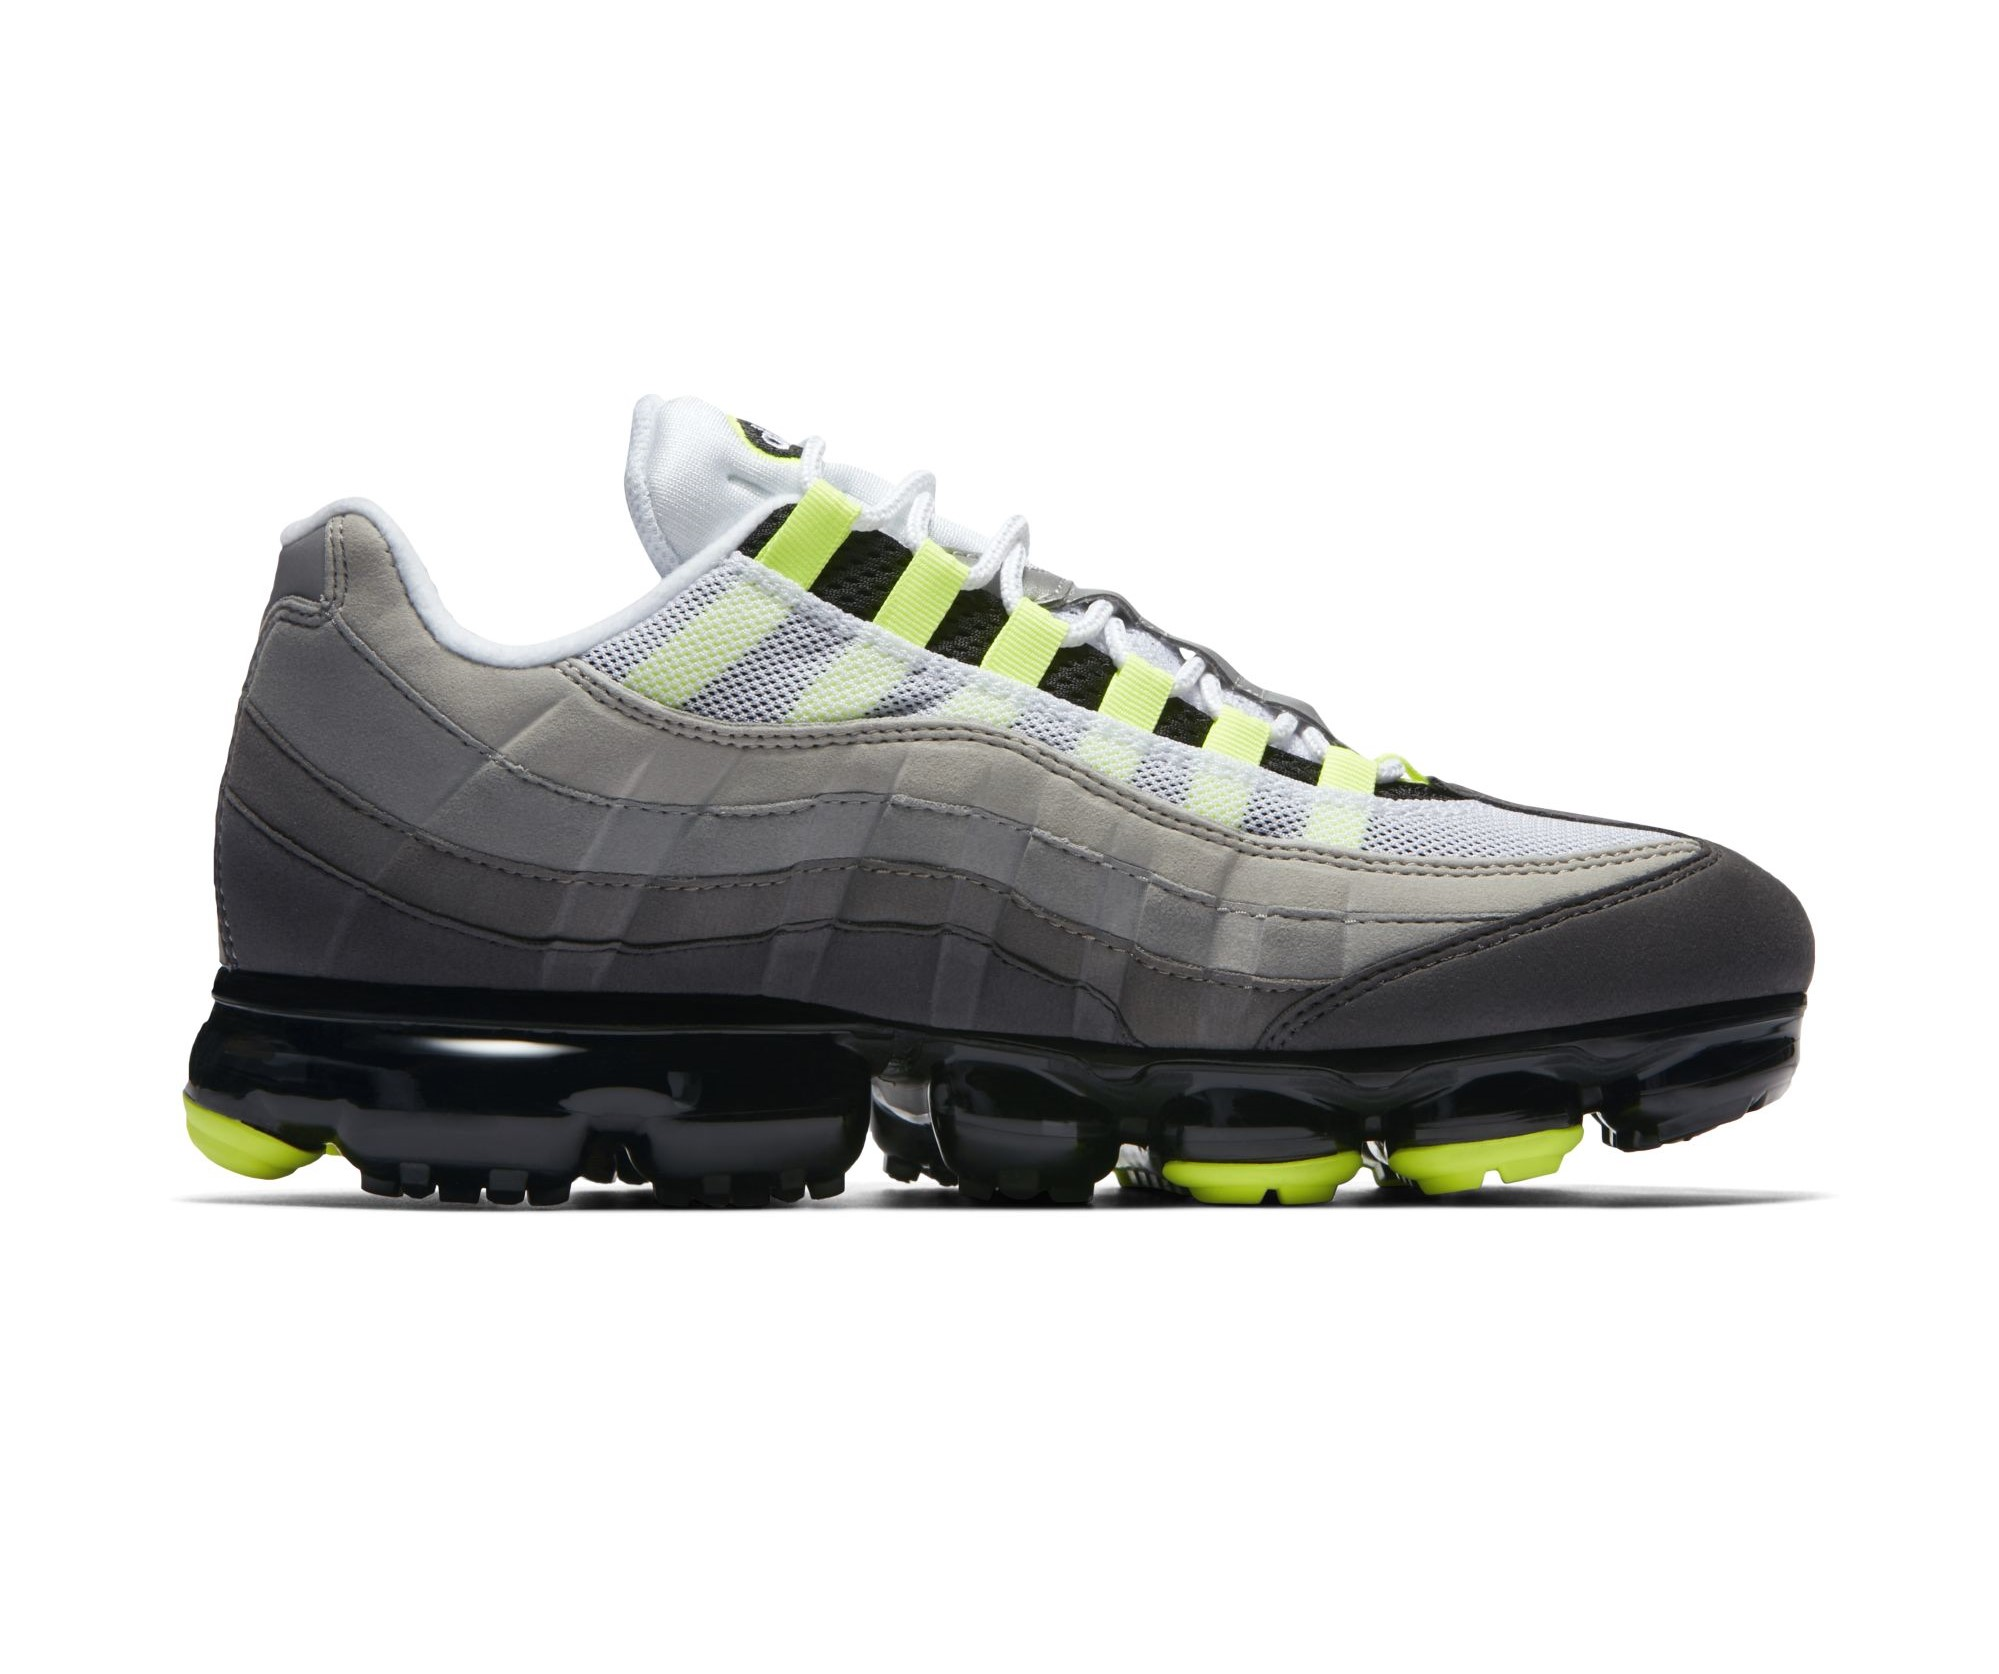 7ea5070d64 nike air vapormax 95 neon release date - WearTesters